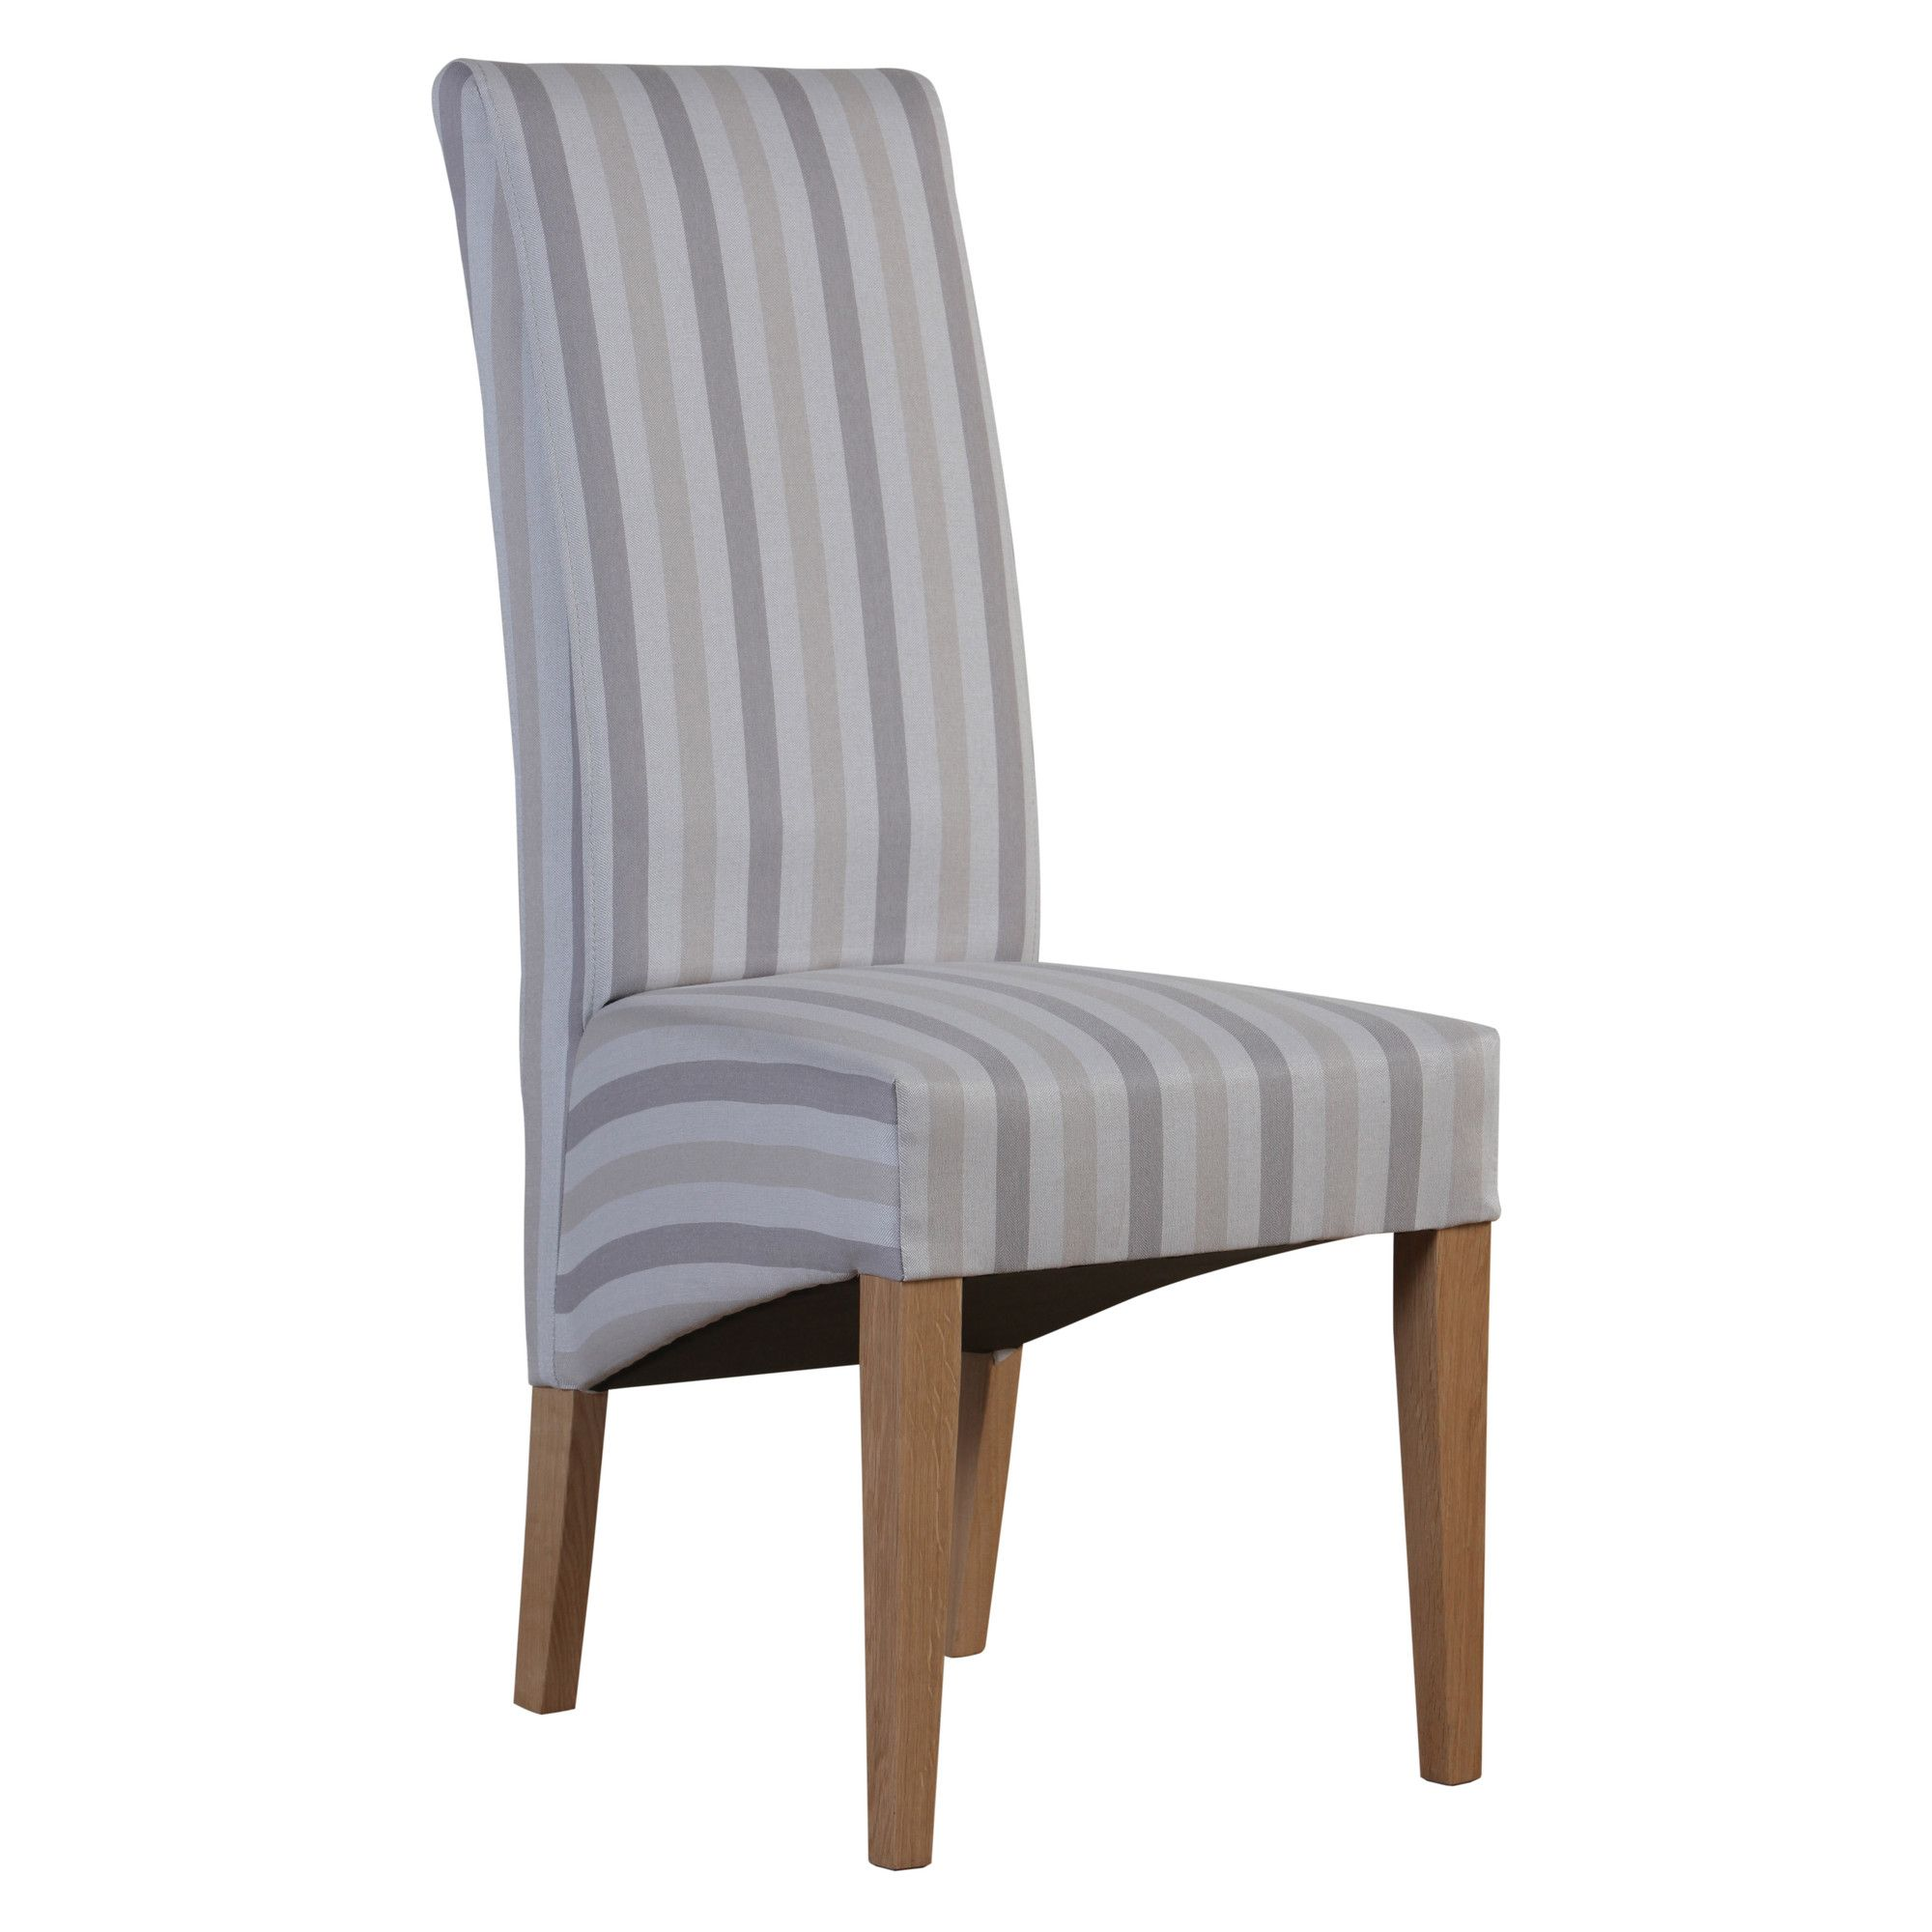 Altruna Gloucester Dining Chair (Set of 2)